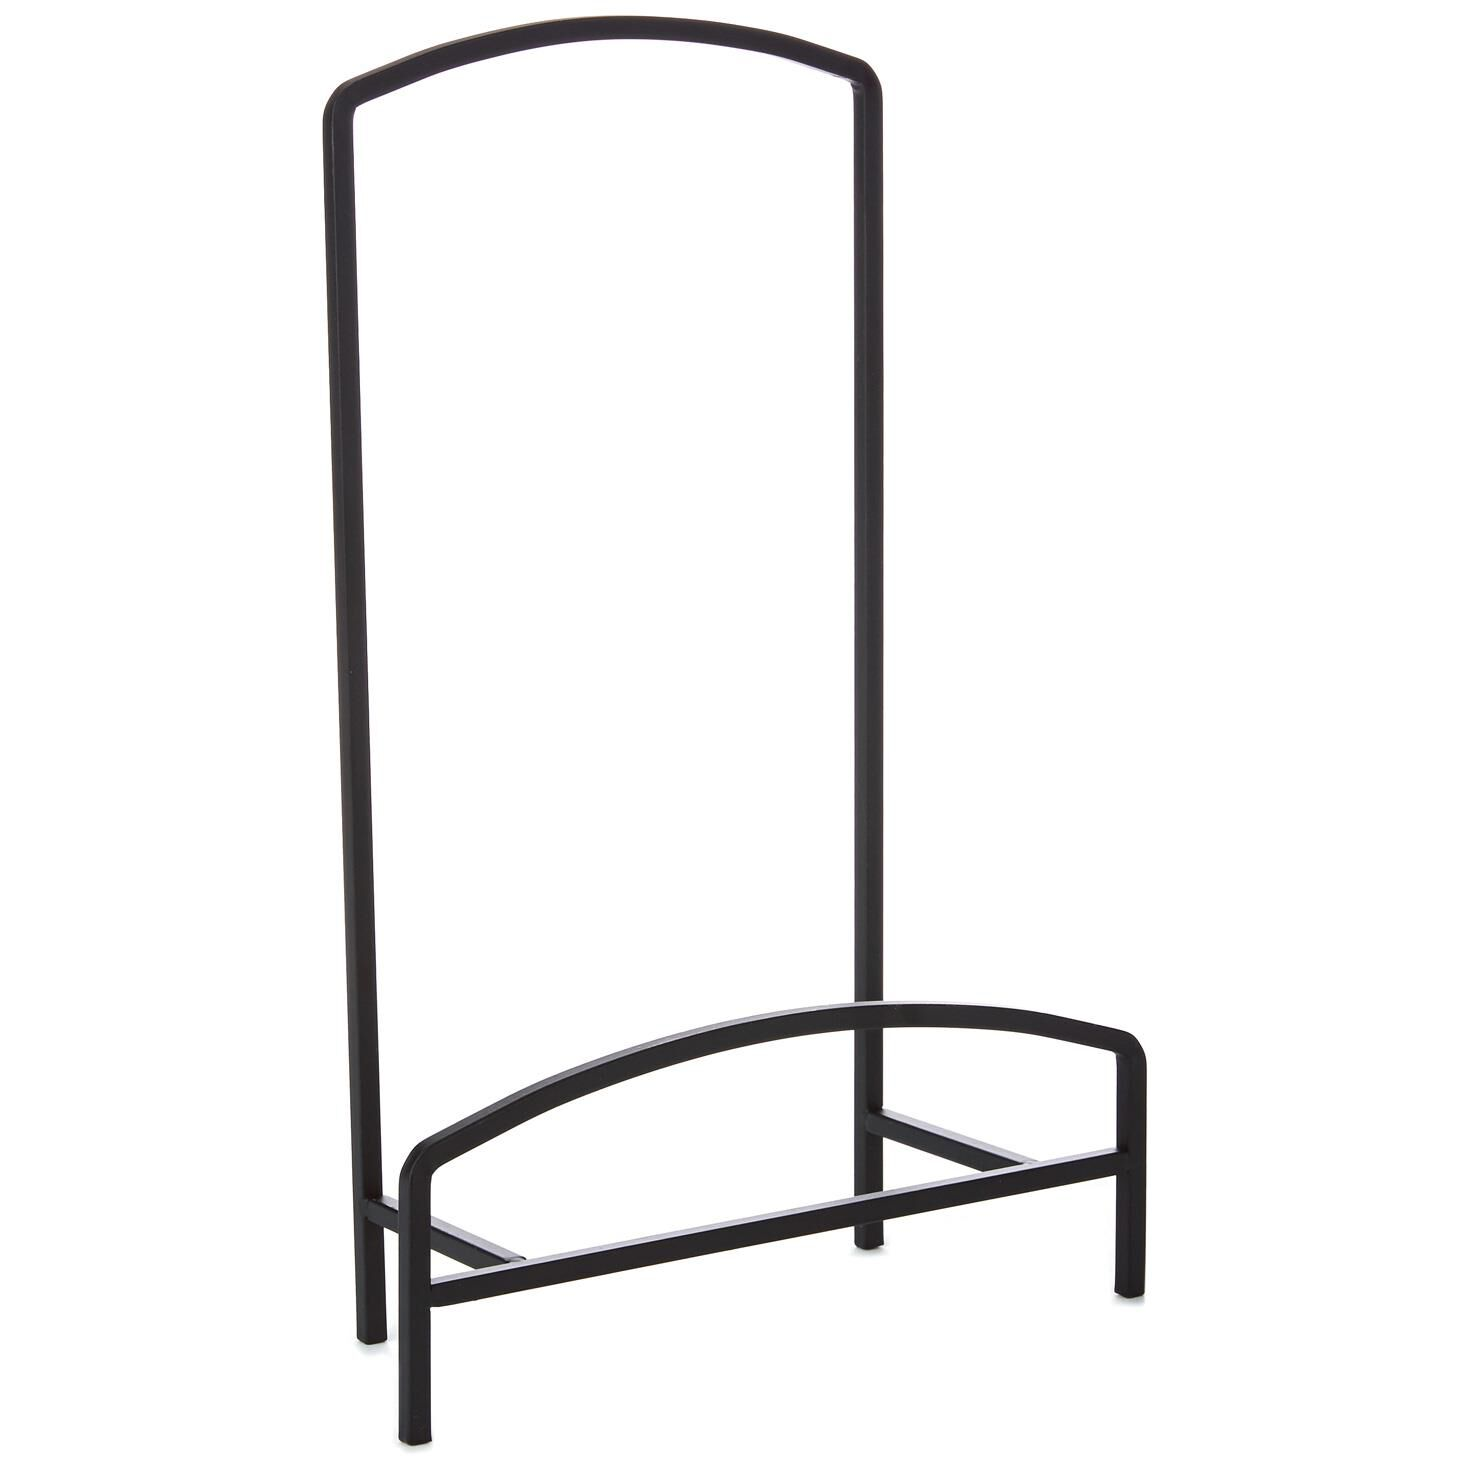 Large Easel/Plate Stand ...  sc 1 st  Hallmark & Large Easel/Plate Stand - Decorative Accessories - Hallmark